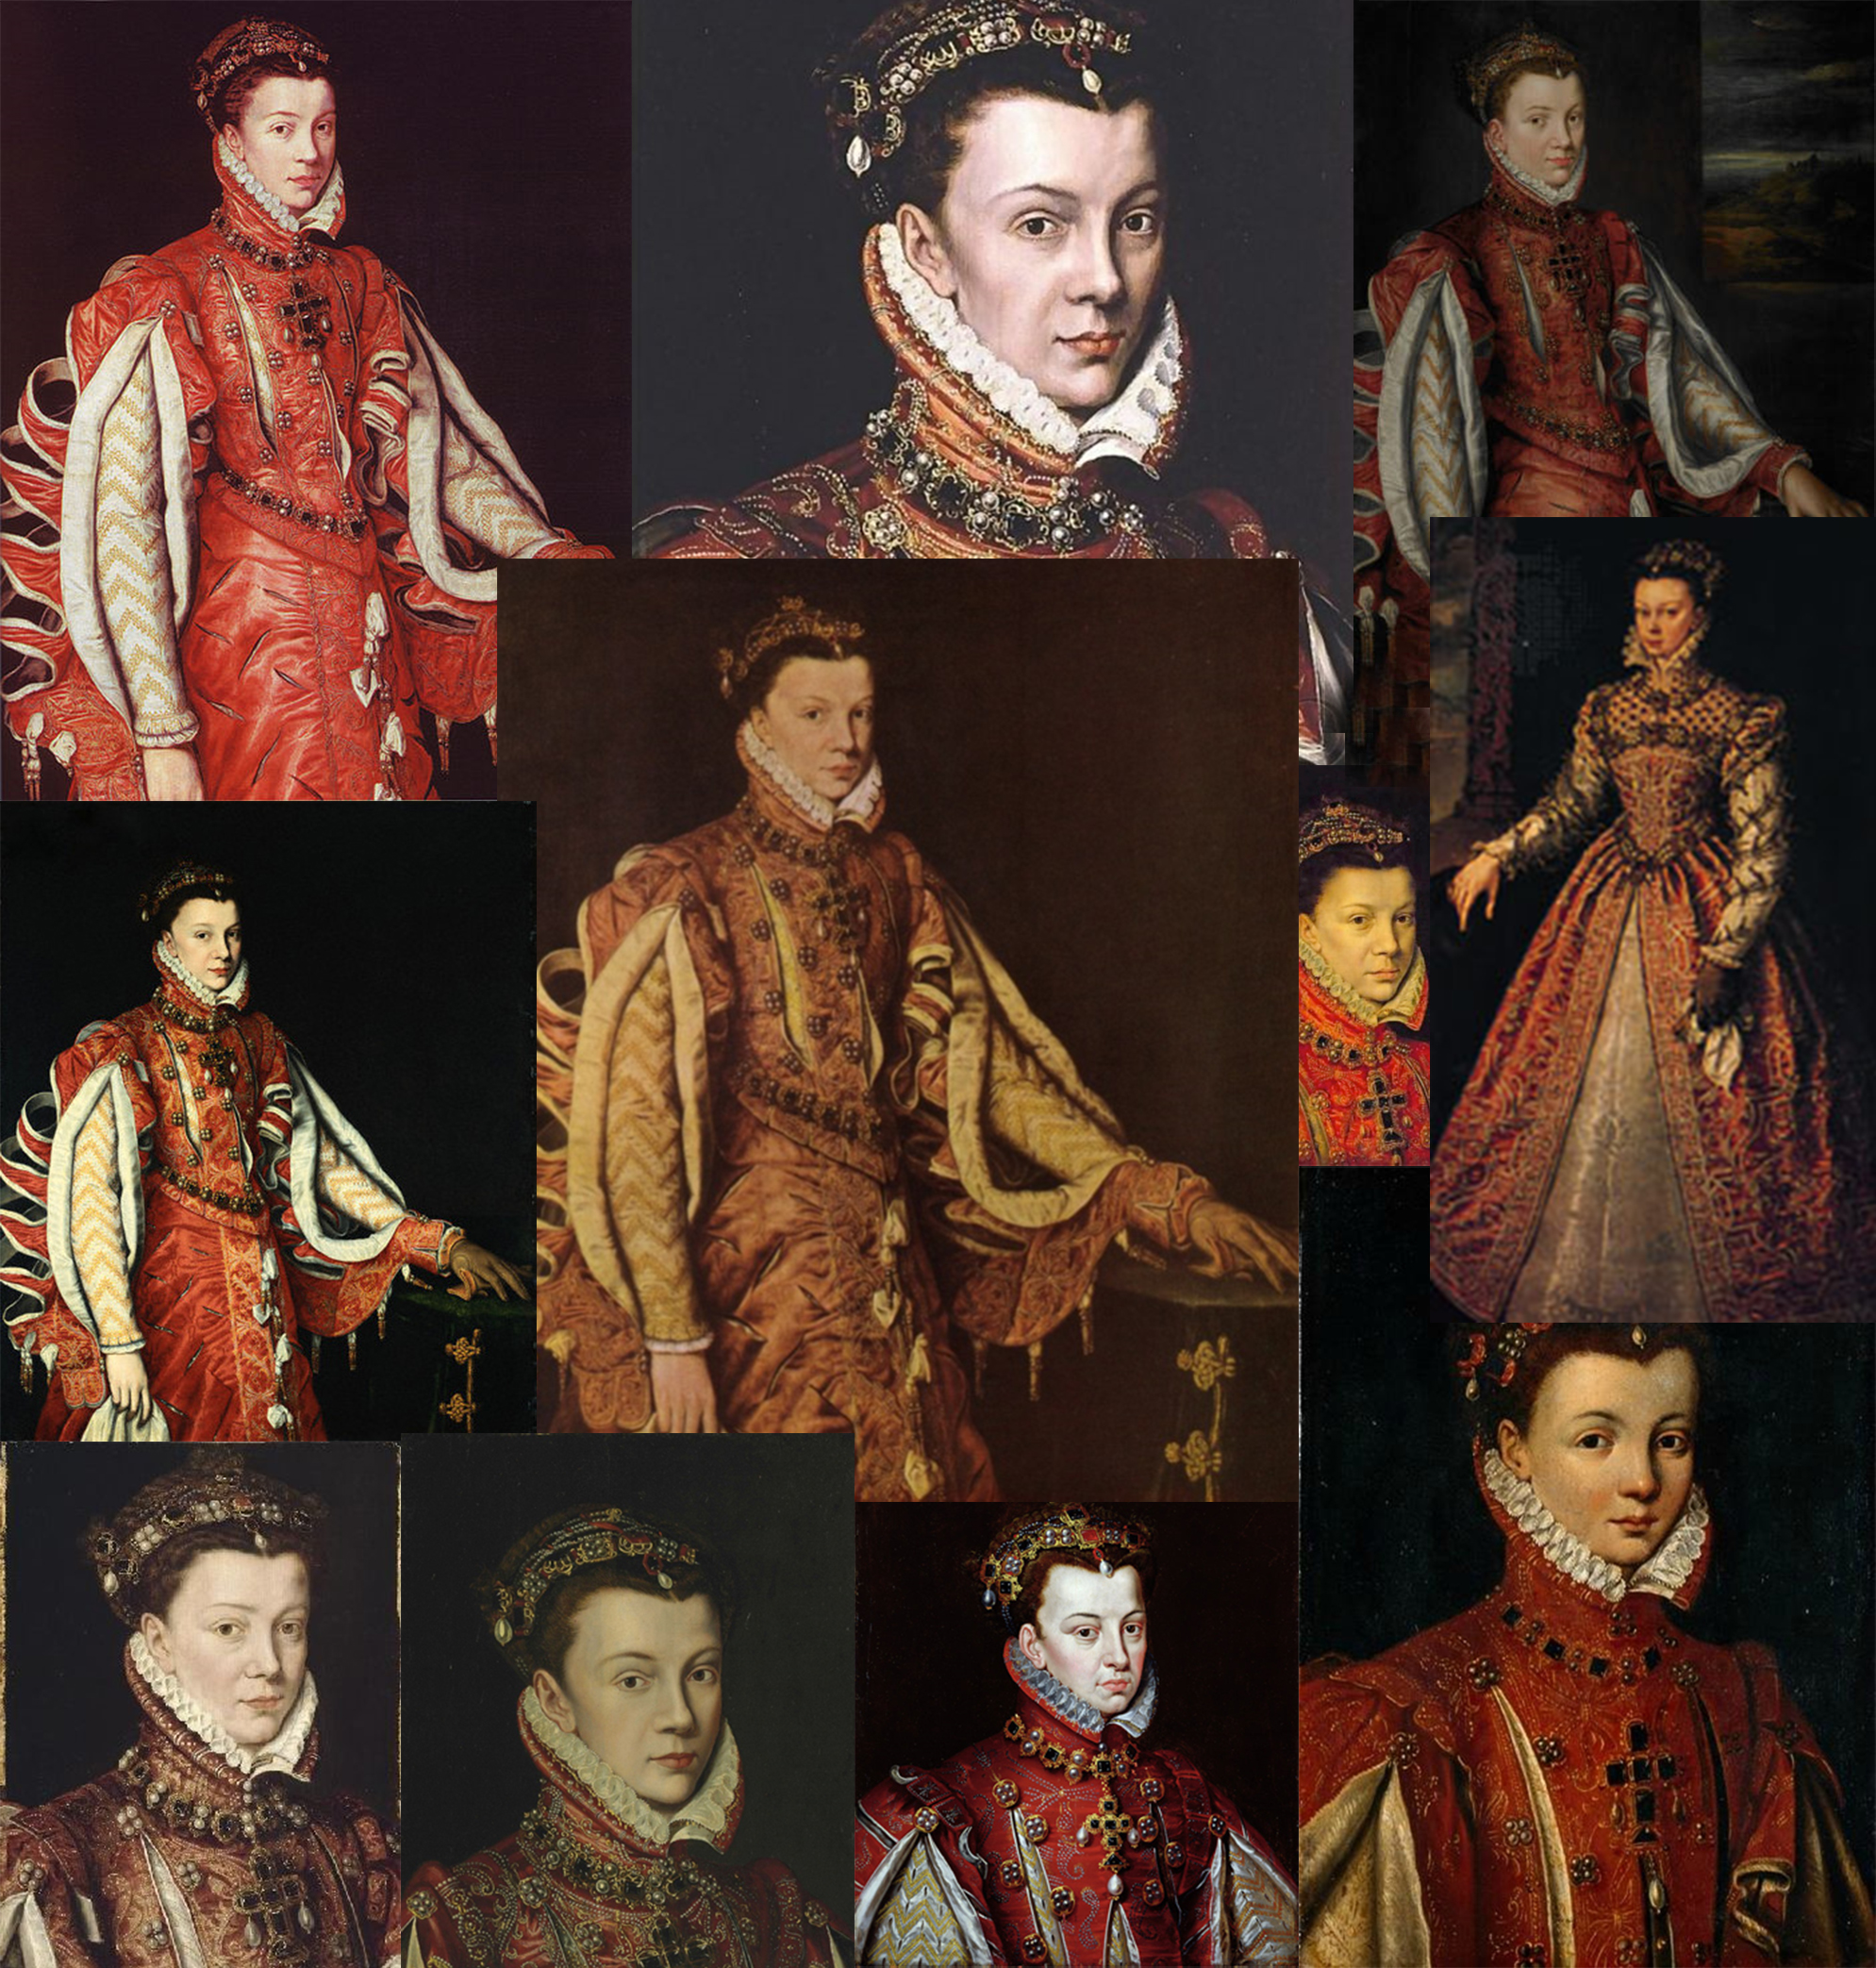 Fig. 2. Collage of all the portraits